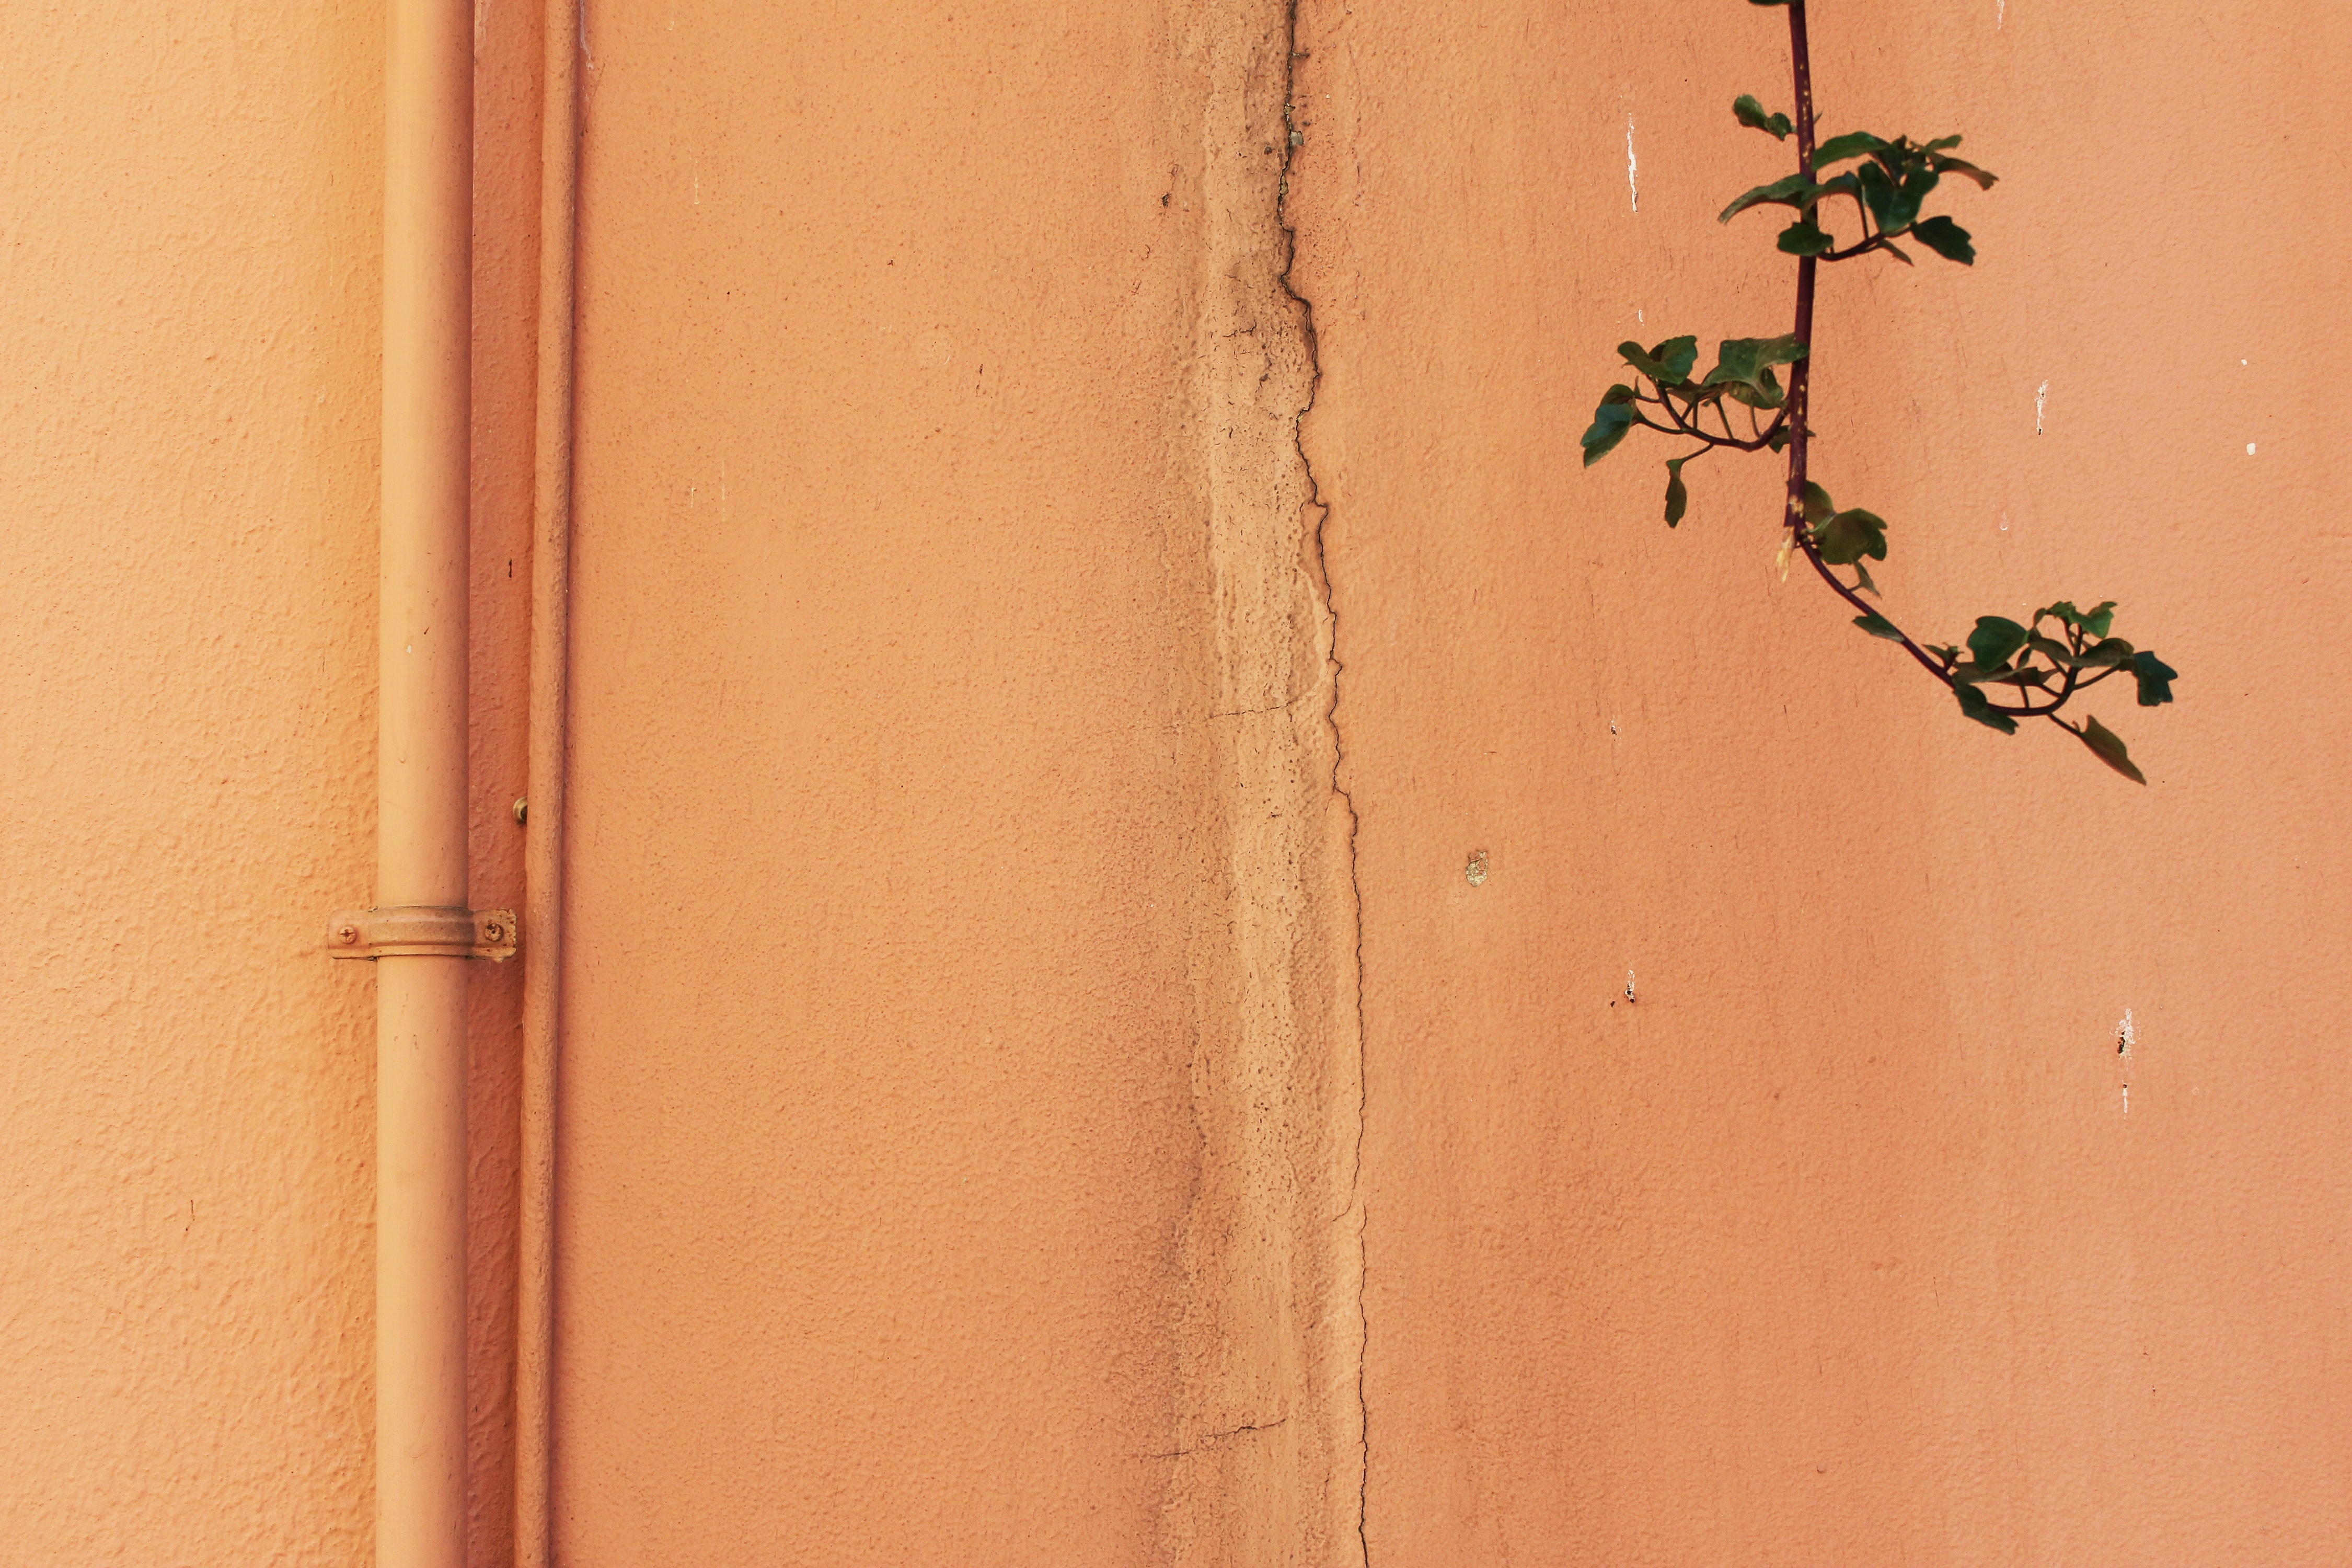 green leafed tree branch near beige wall